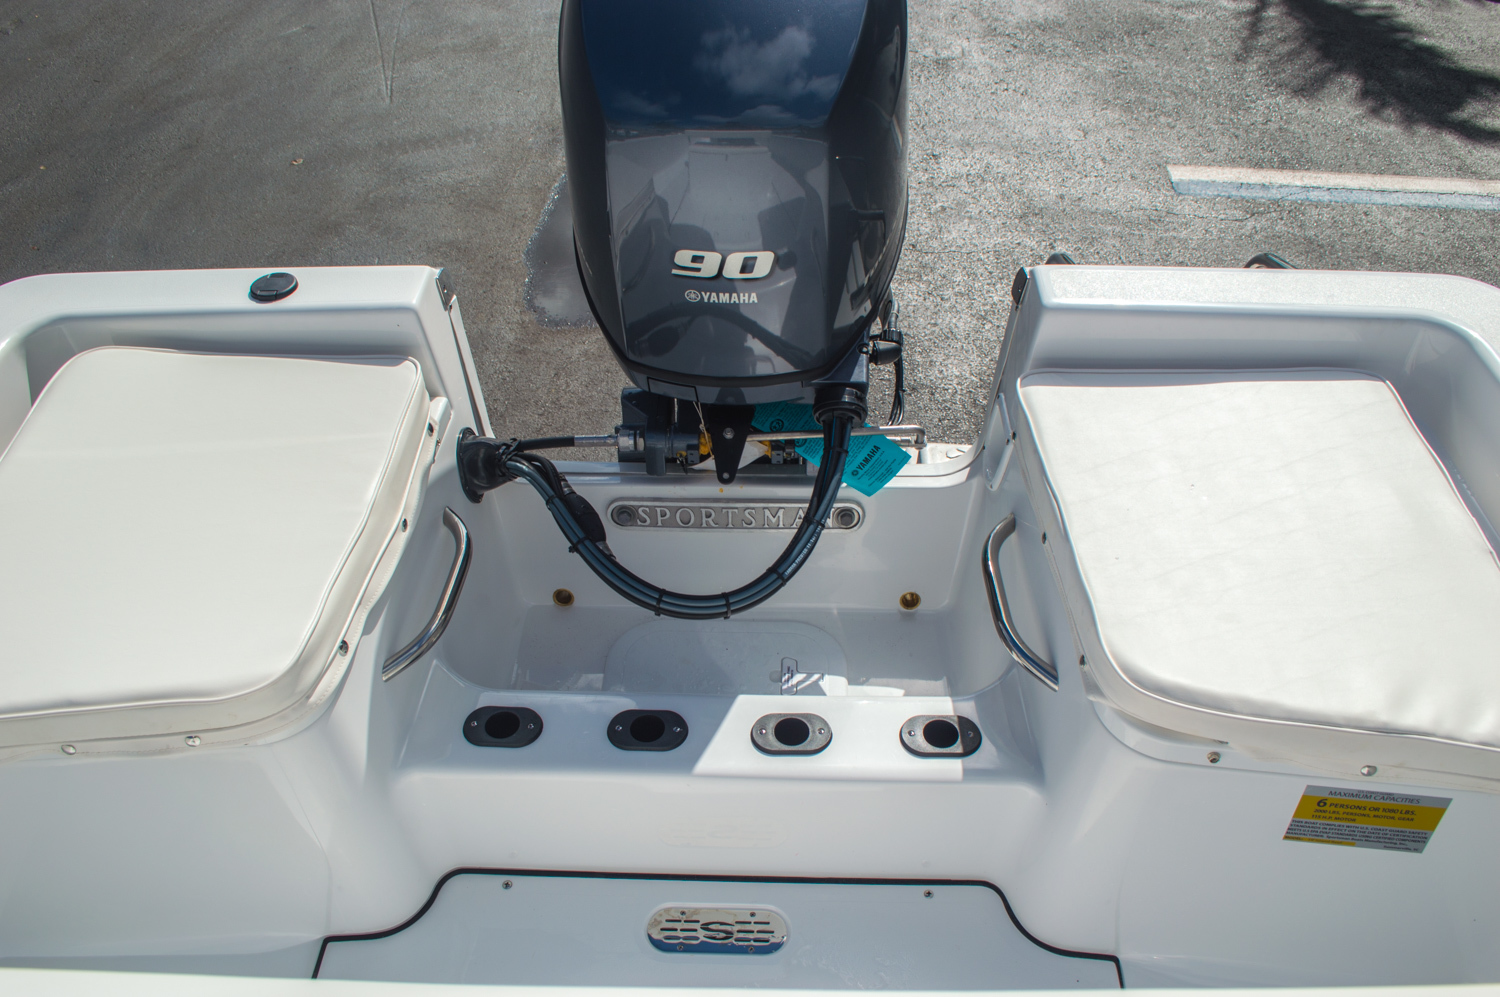 Thumbnail 19 for New 2016 Sportsman 19 Island Reef boat for sale in West Palm Beach, FL